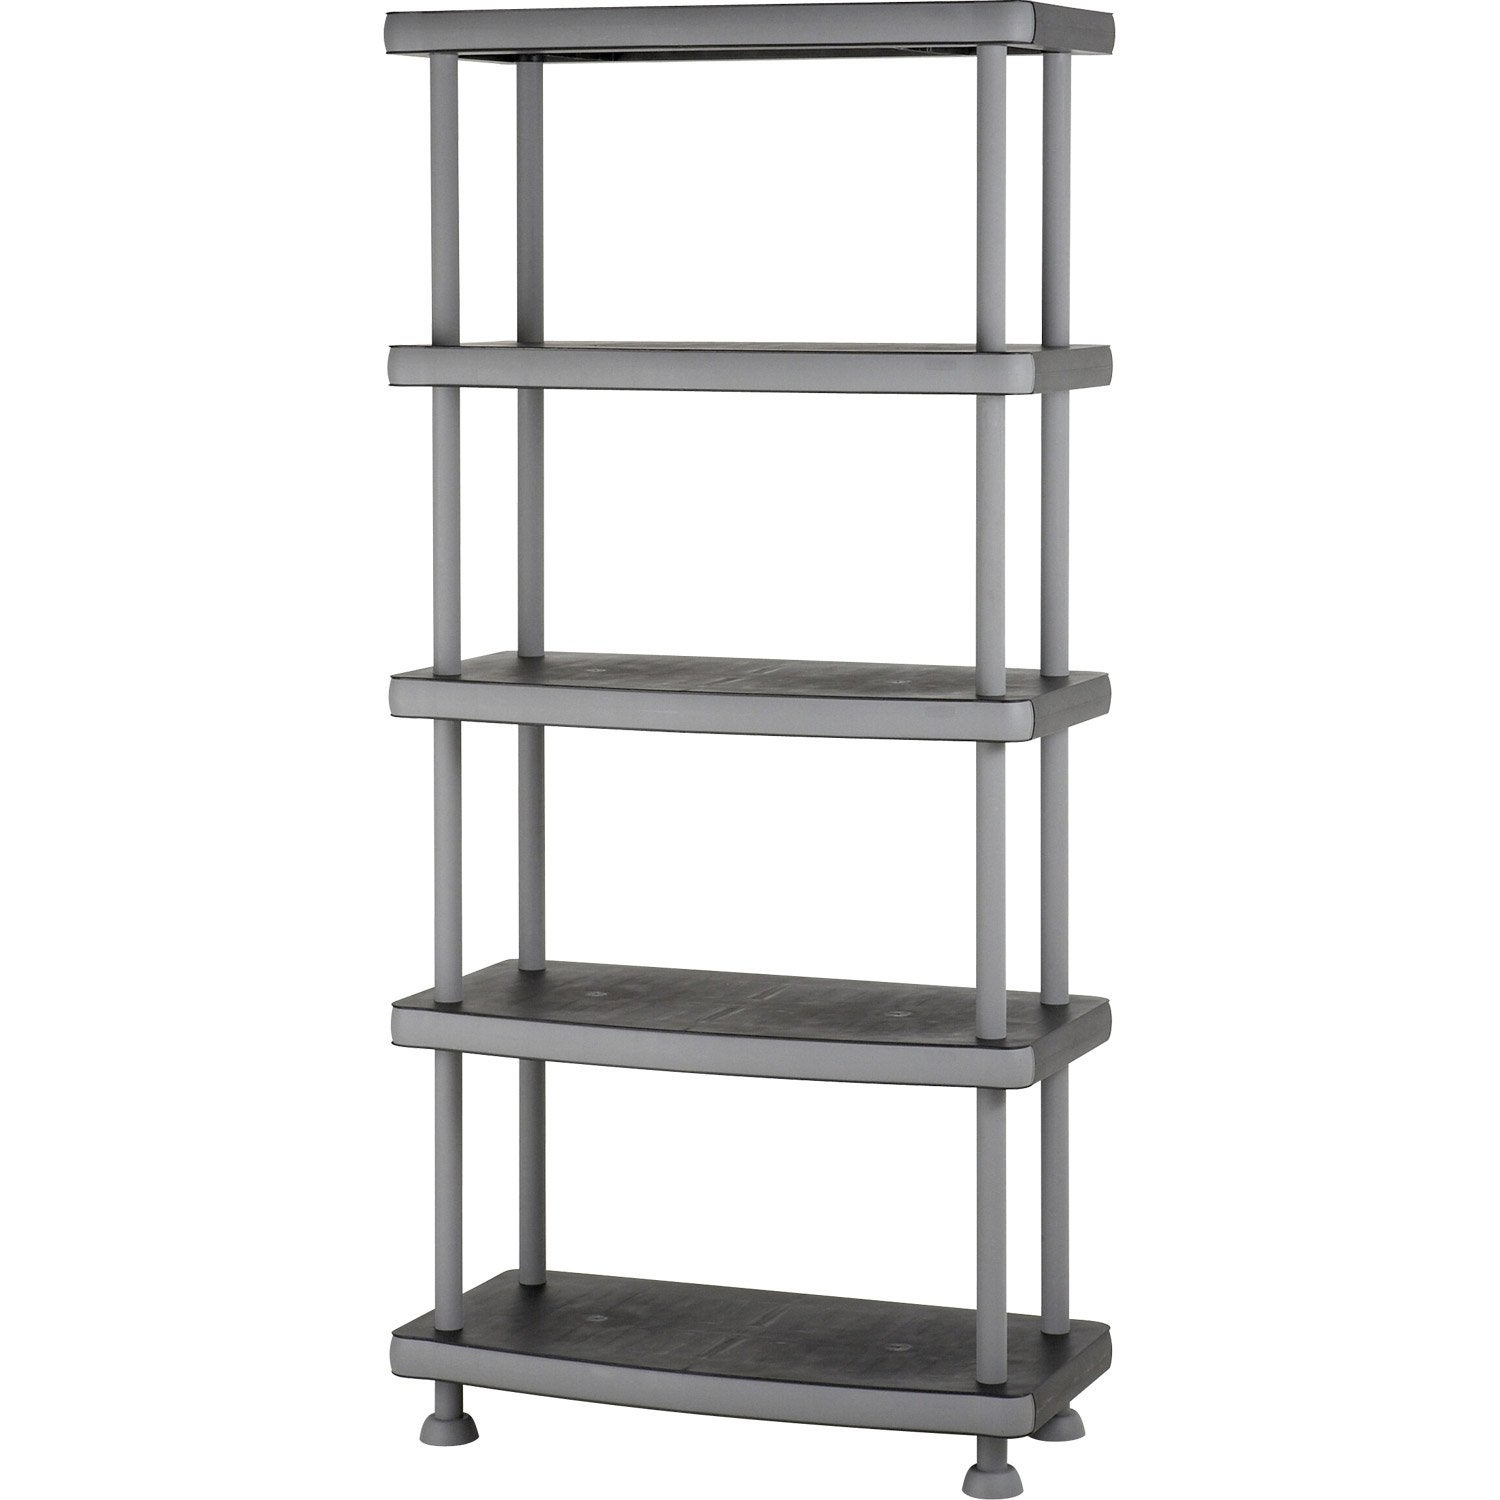 Etag re r sine 5 tablettes noir l90xh185xp45 cm leroy merlin - Leroy merlin etagere metal ...